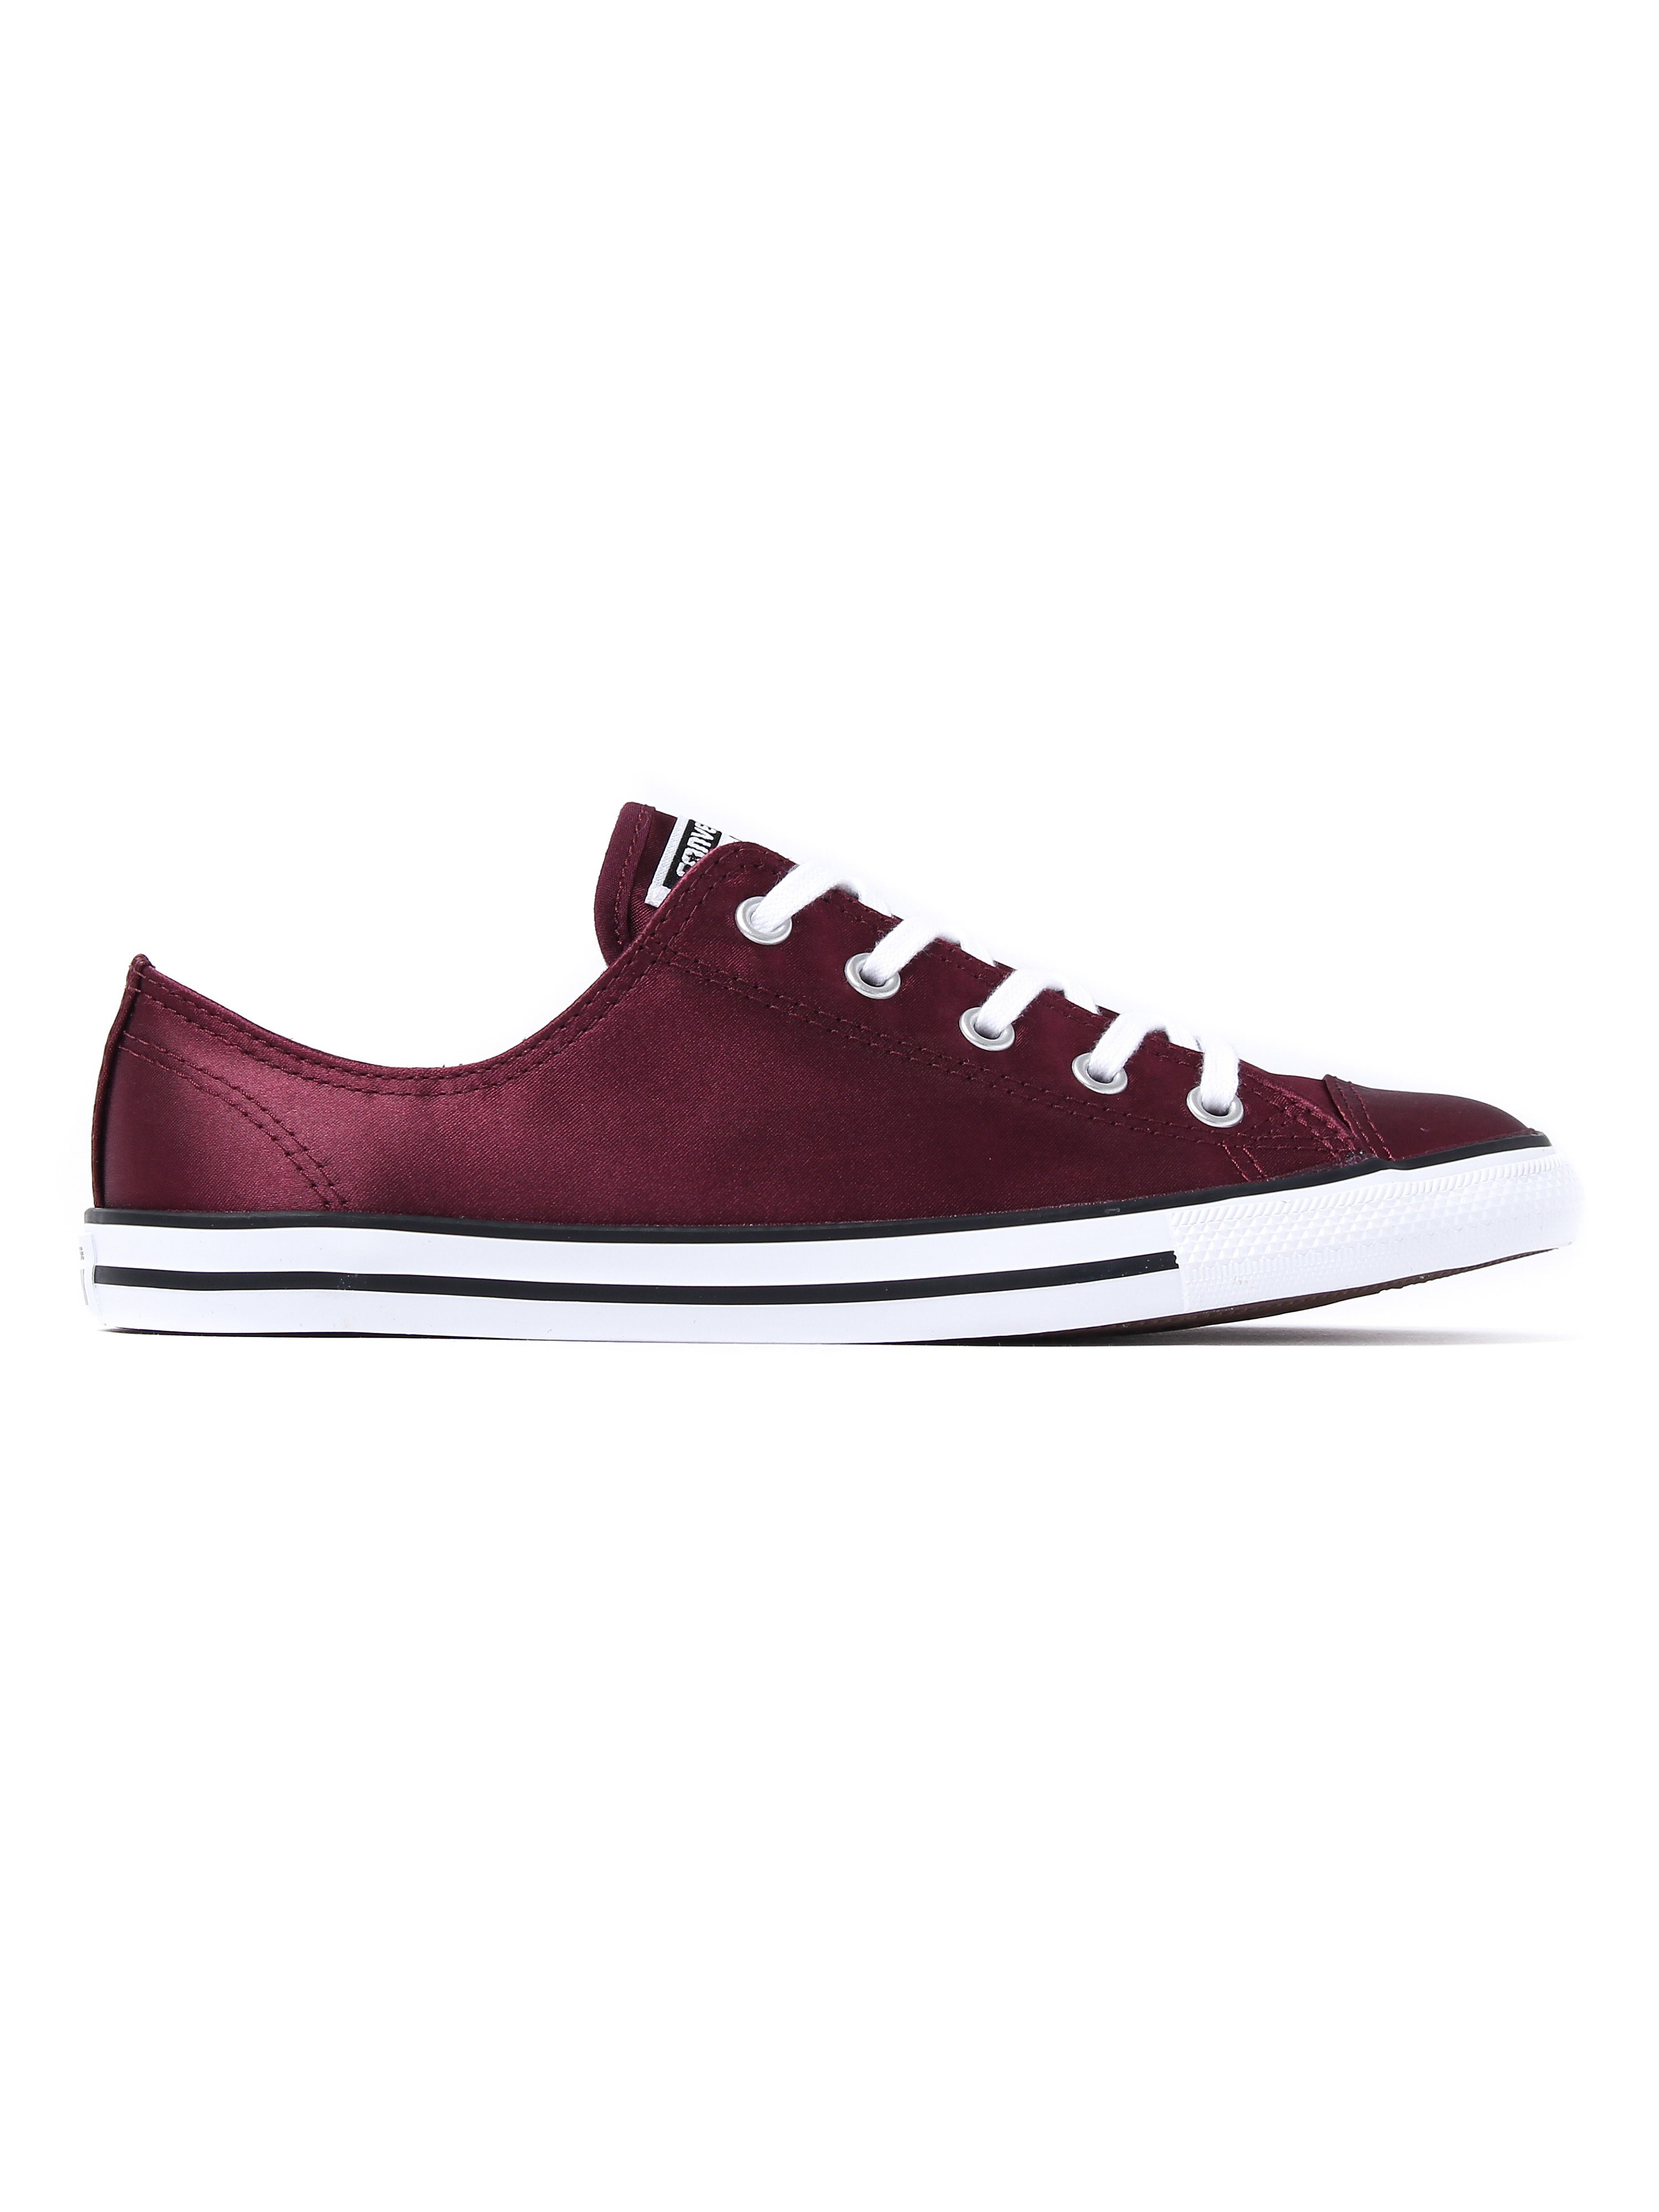 Converse Women's All Star Dainty OX Canvas Trainers - Dark Sangria